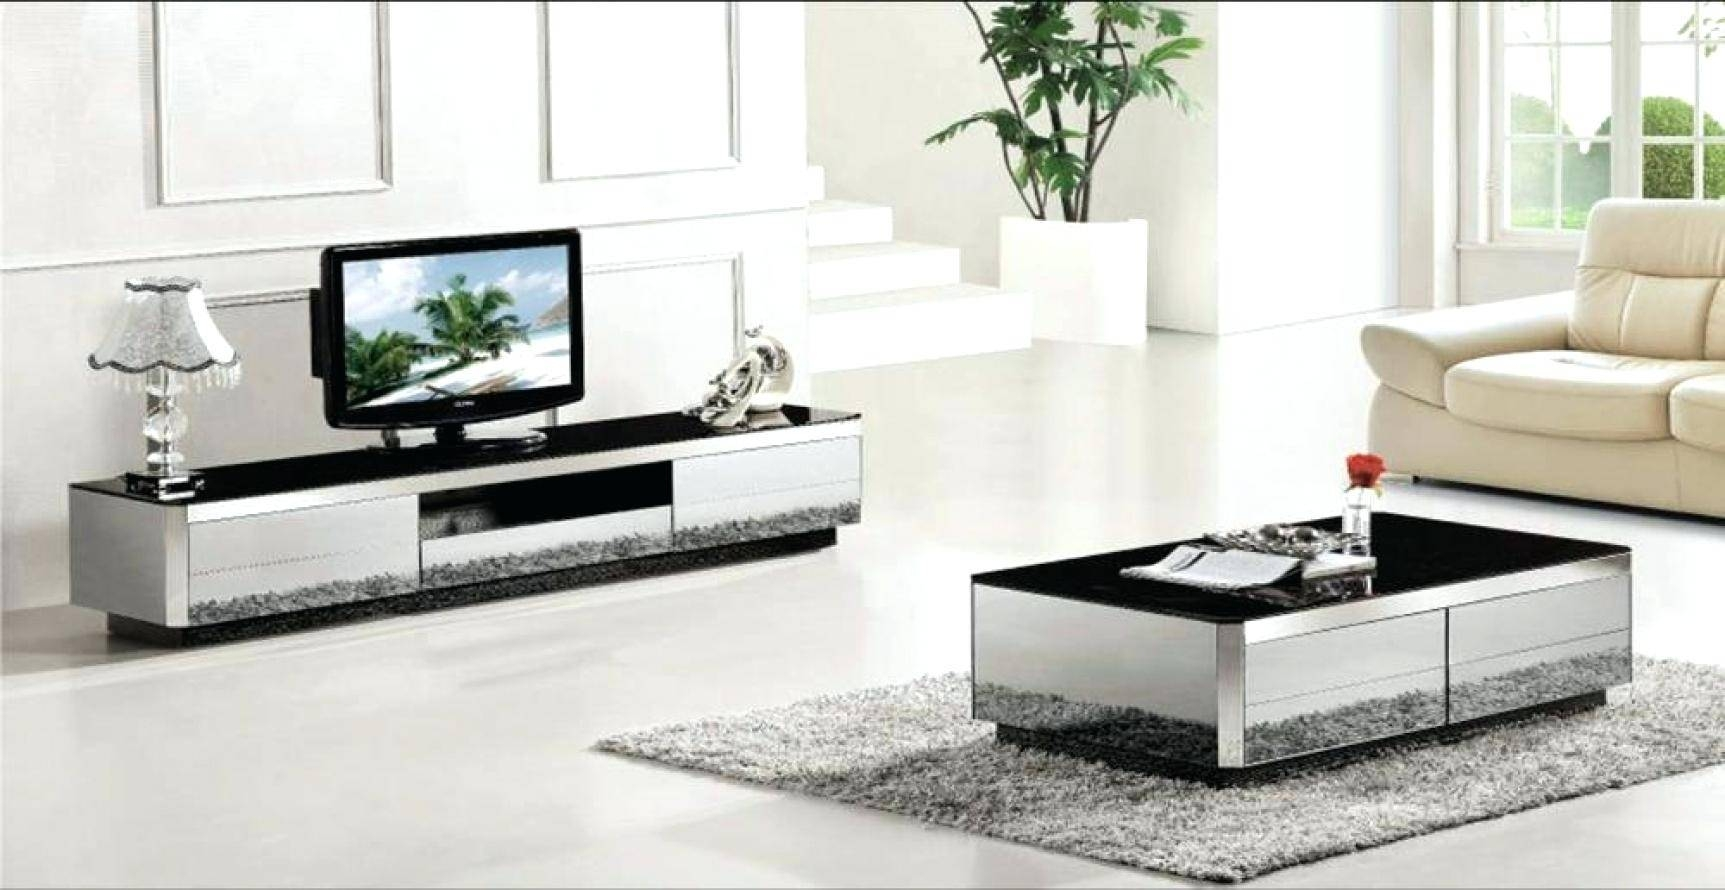 Coffee Table Sets With Matching Tv Stand | Coffee Tables Decoration within Coffee Table And Tv Unit Sets (Image 12 of 30)